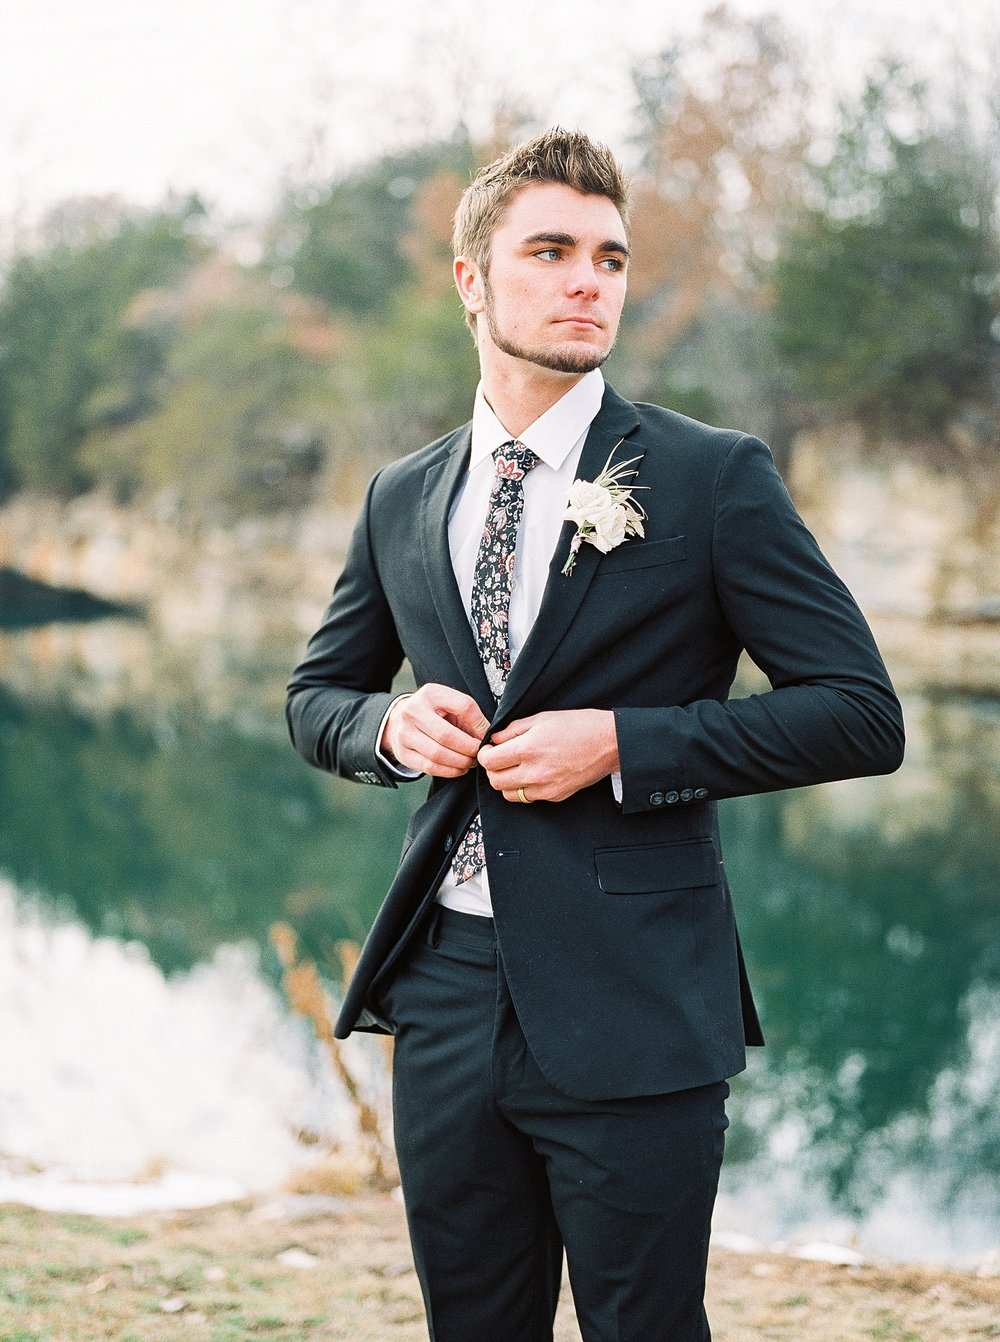 Snowy Winter Wedding at Wildcliff Events Lake With Earthy Jewel Tones and Organic Refined Style by Kelsi Kliethermes Photography Kansas City Missouri Wedding Photographer_0131.jpg